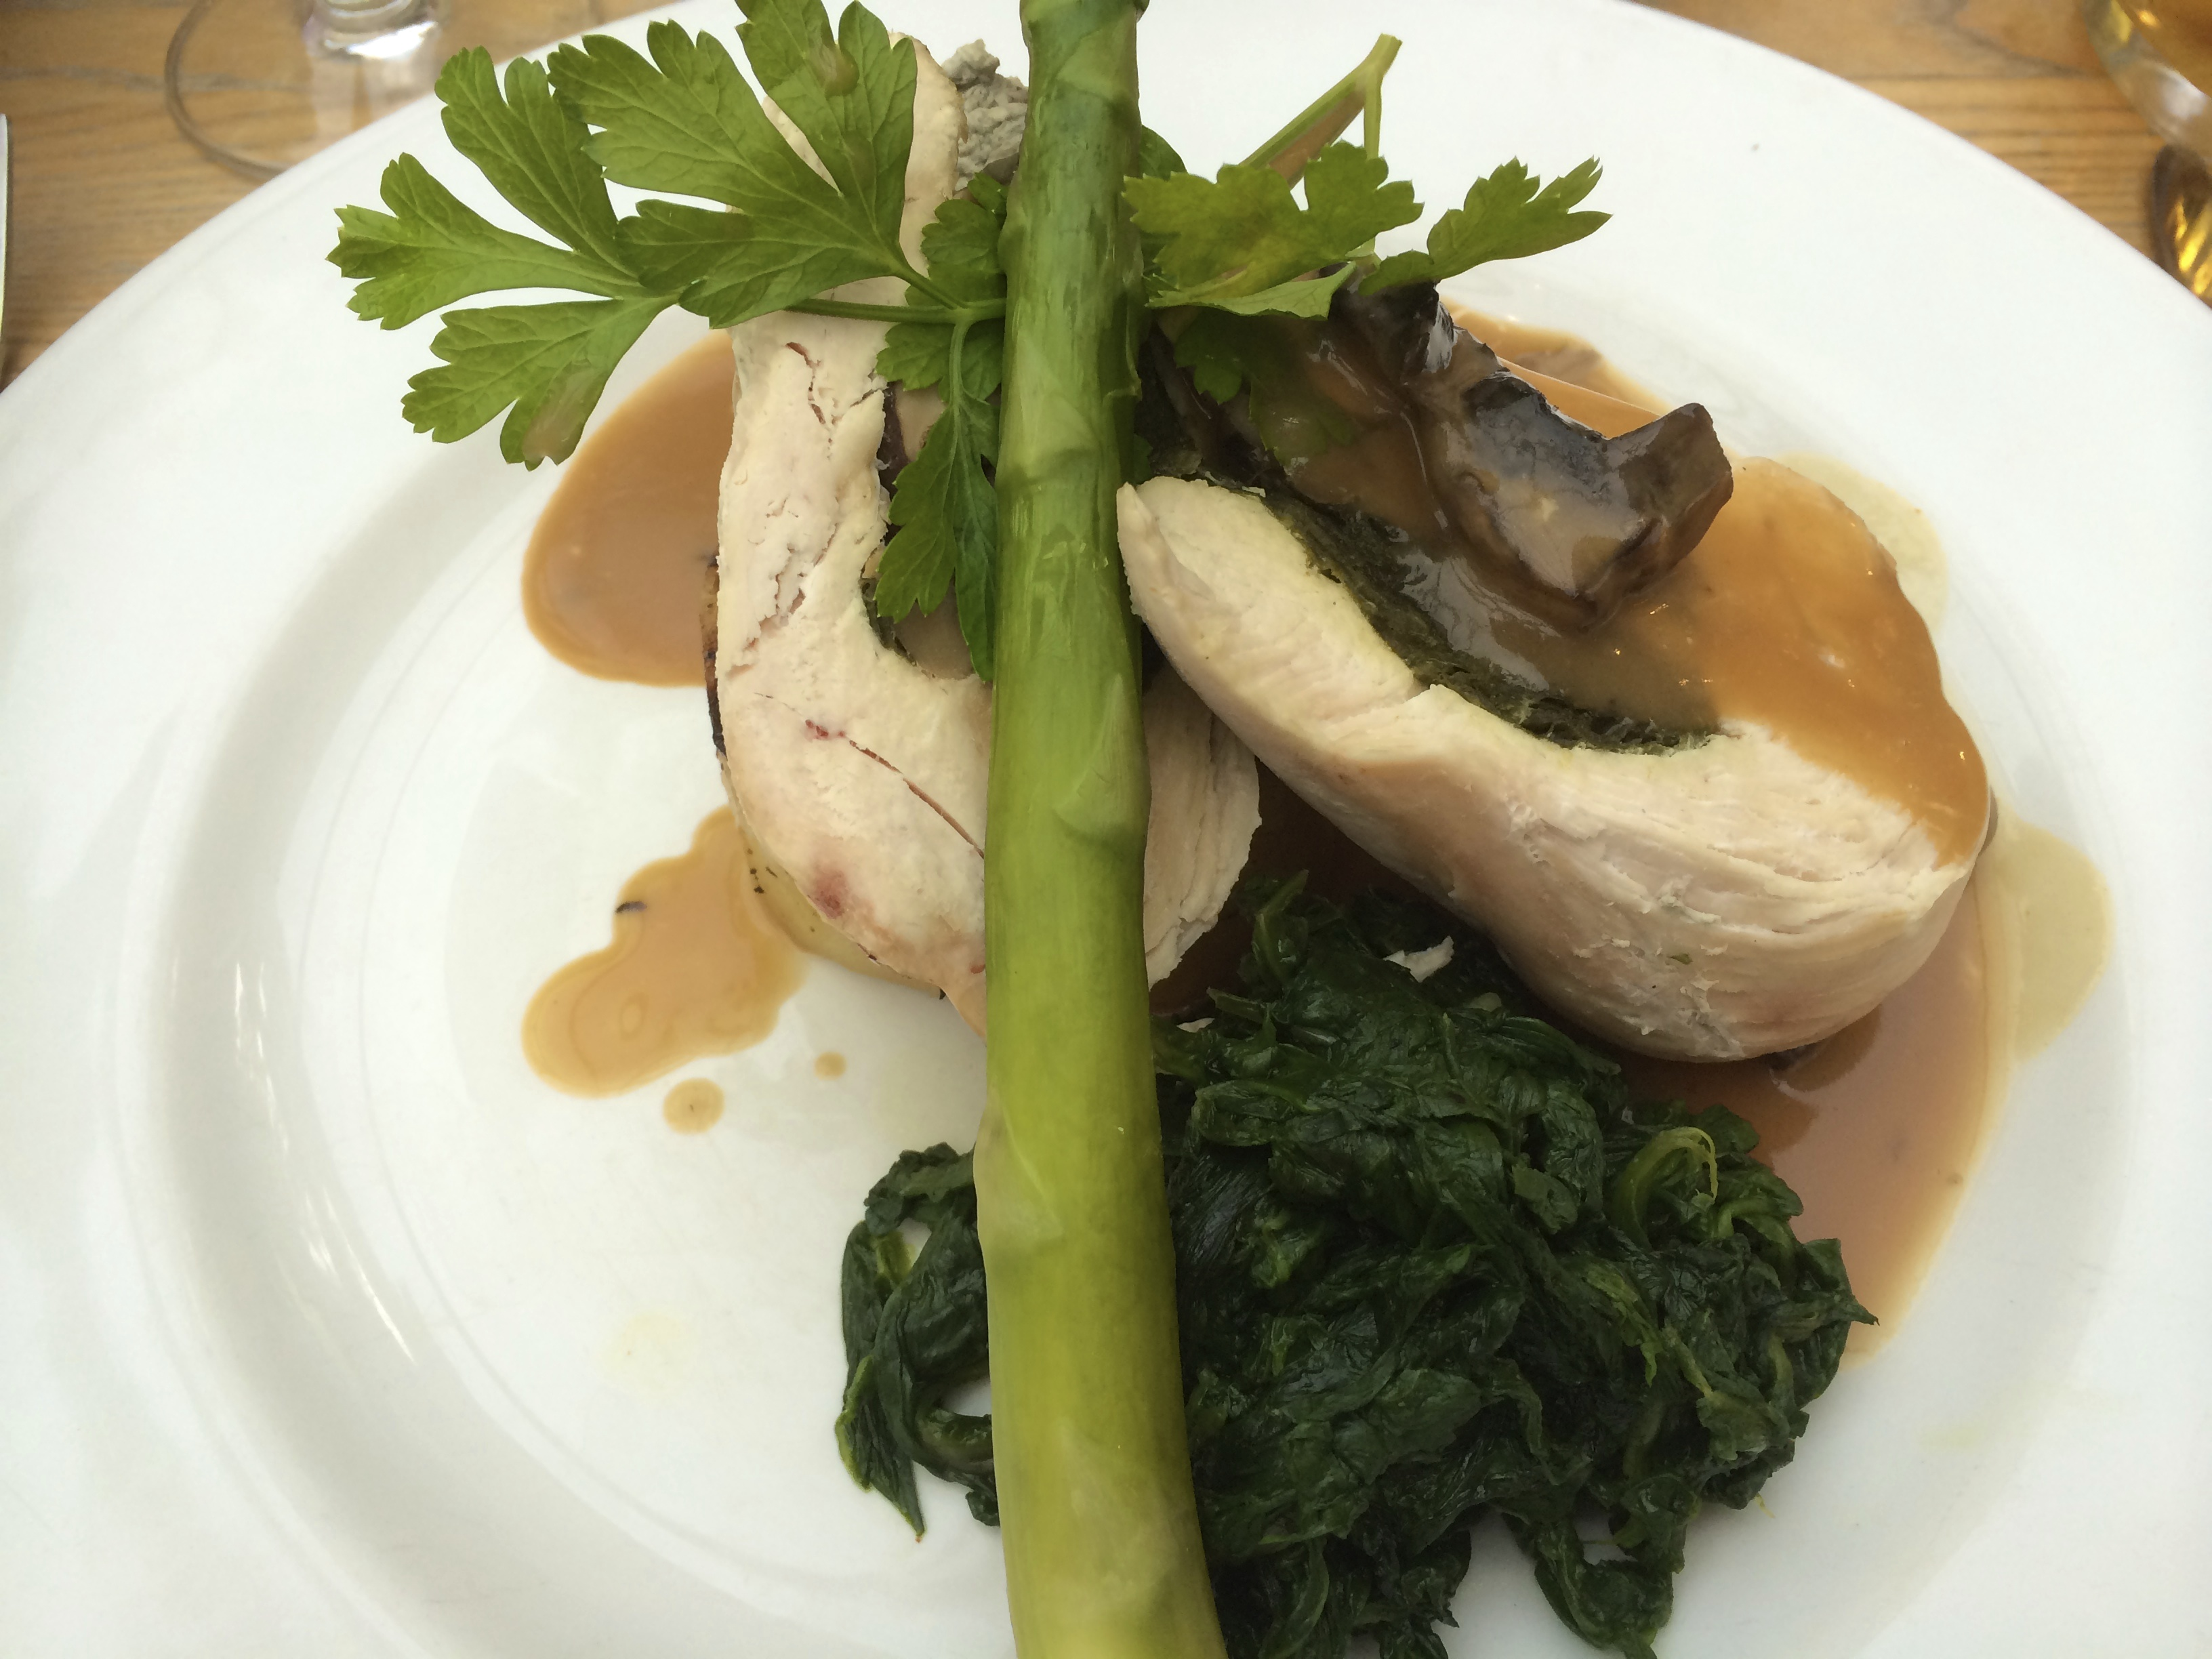 Chicken and Asparagus. Copyright Chris Bushe